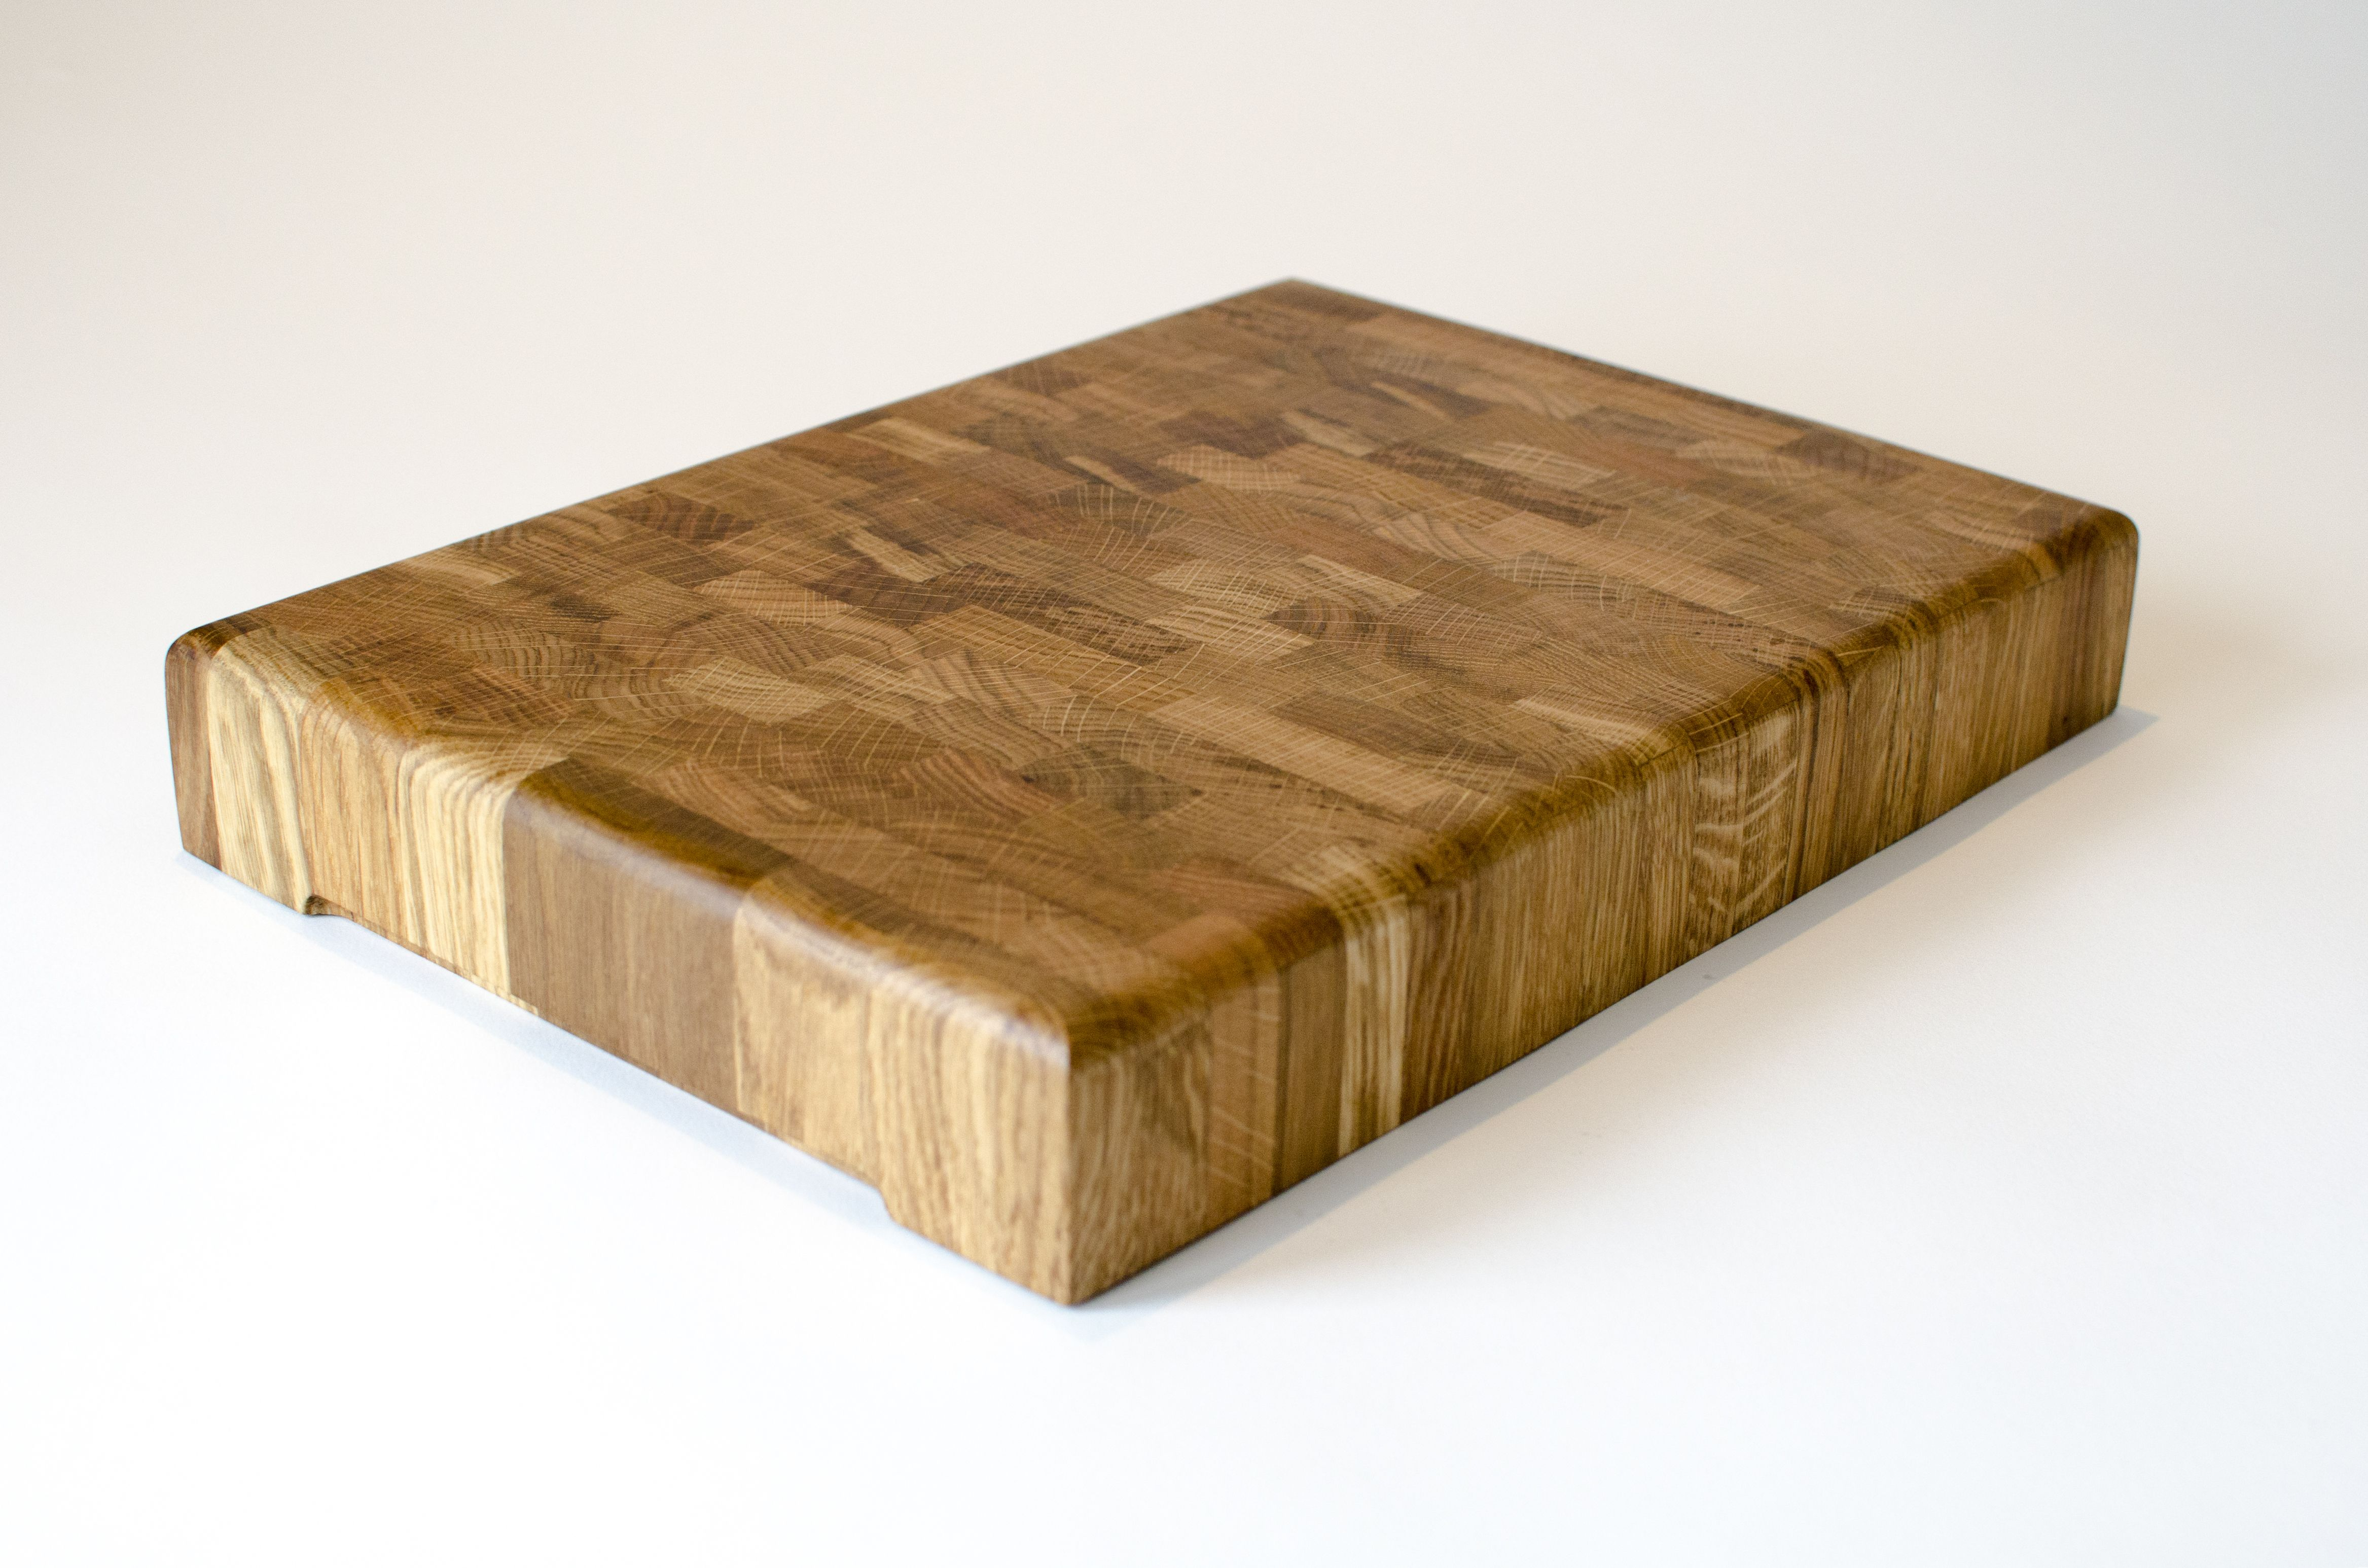 Pin On Handmade Wooden Chopping Board End Grain